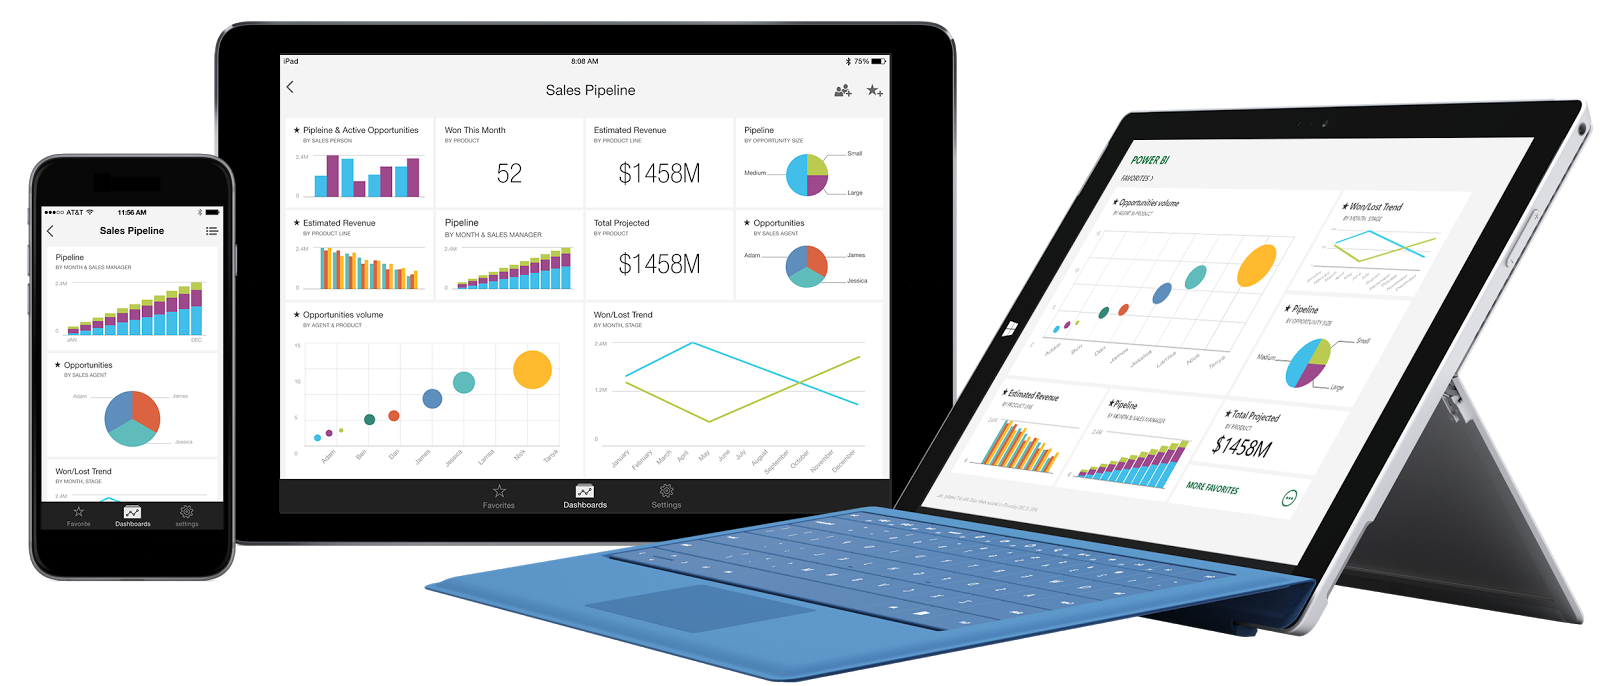 Ravindranathreddy msbi blog power bi really powerful source httpblogsdnbpowerbiarchive20141218new power bi features available for previewpx xflitez Gallery